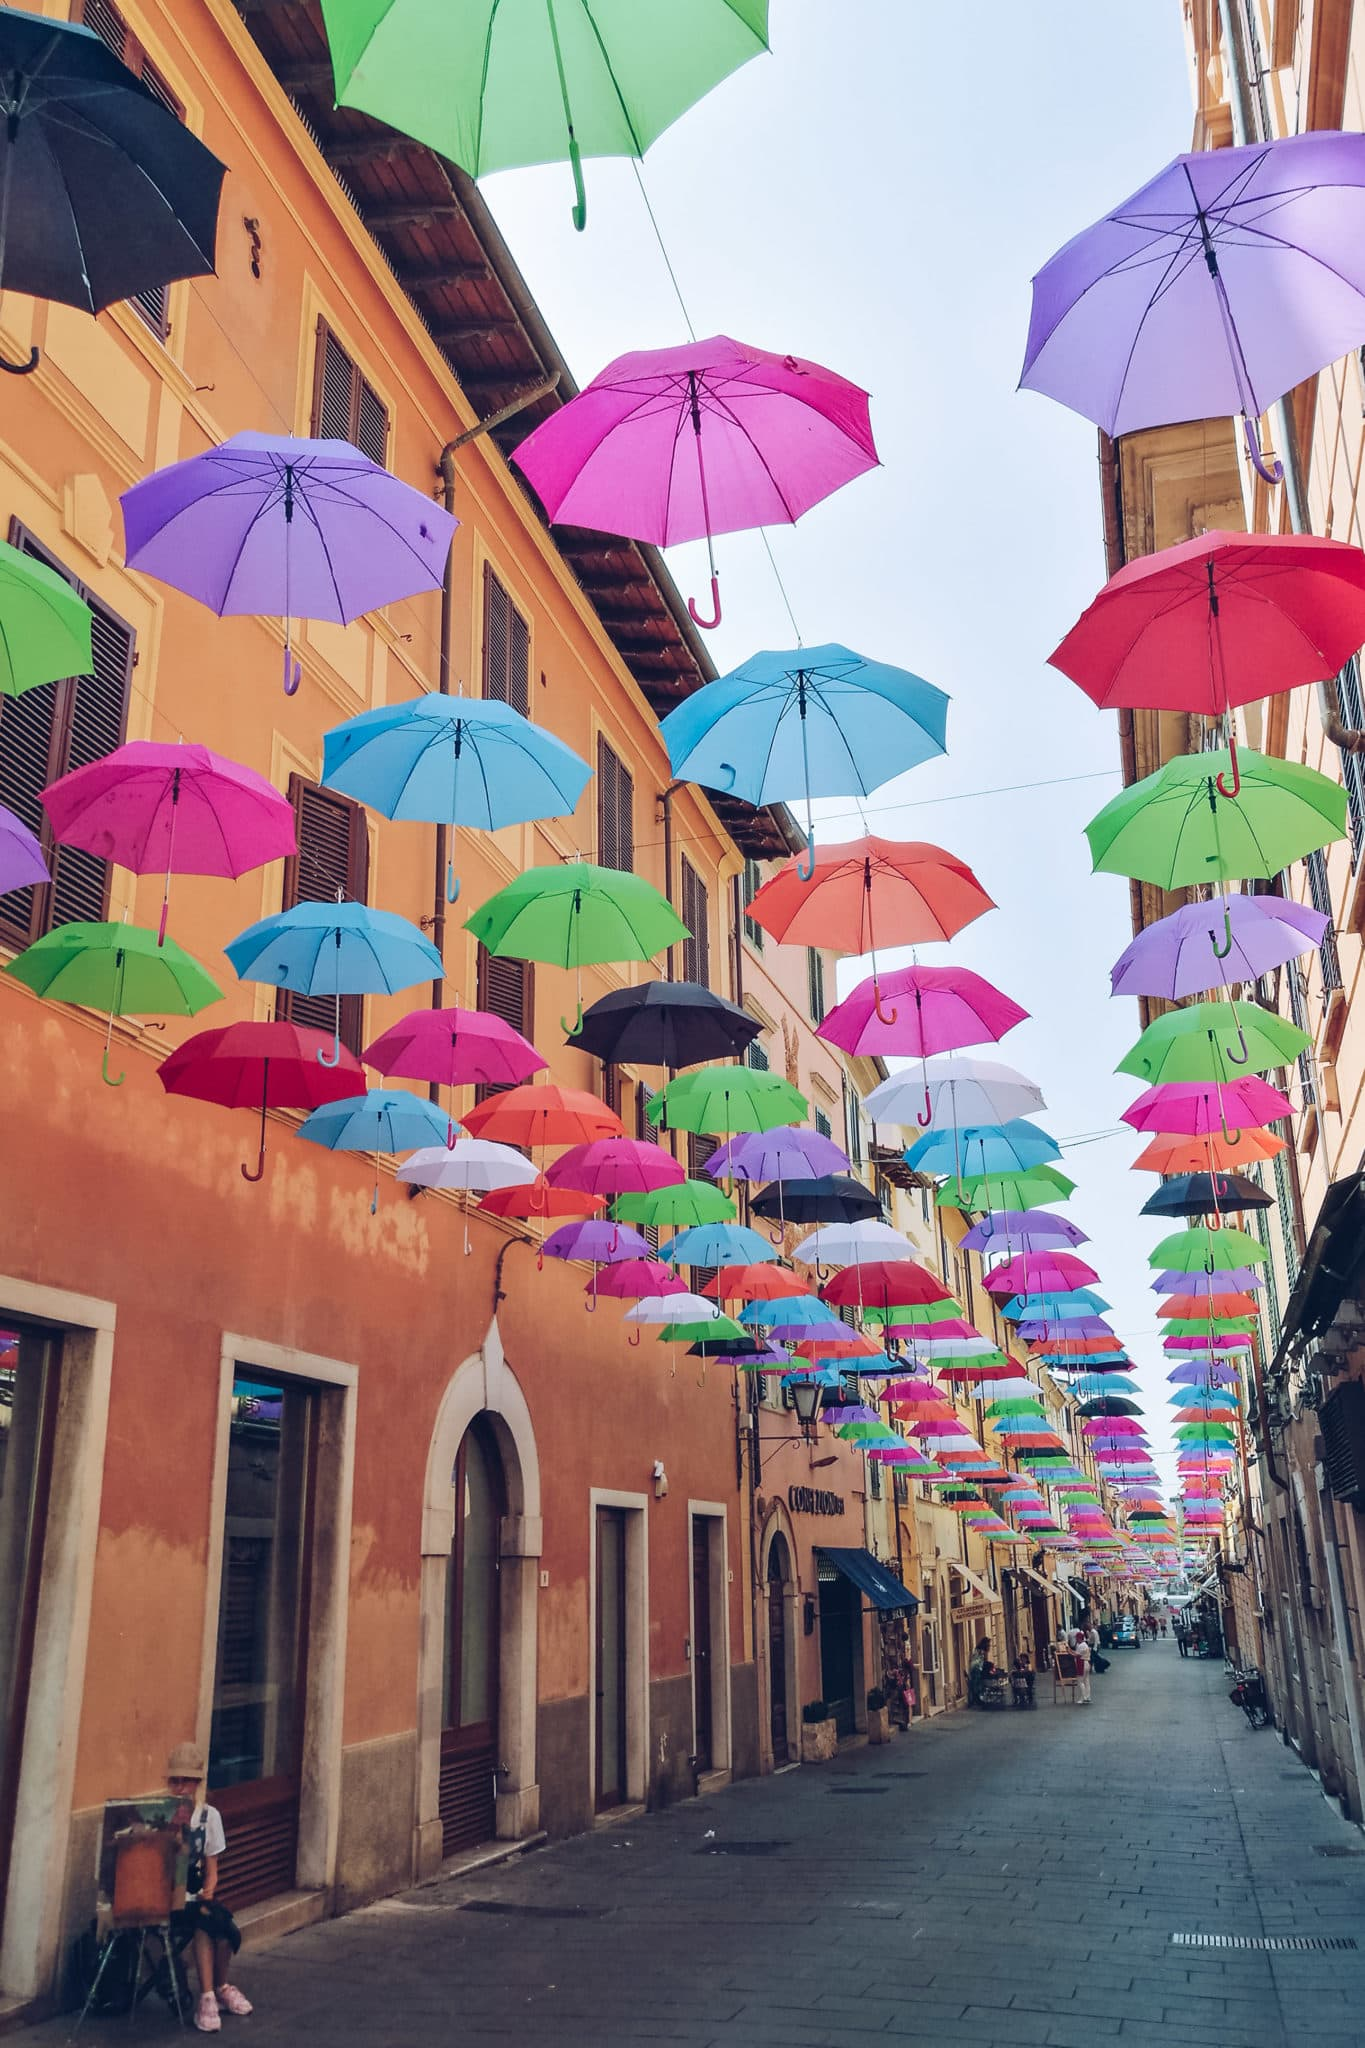 Floating Umbrella in Pietrasanta in Via Mazzini